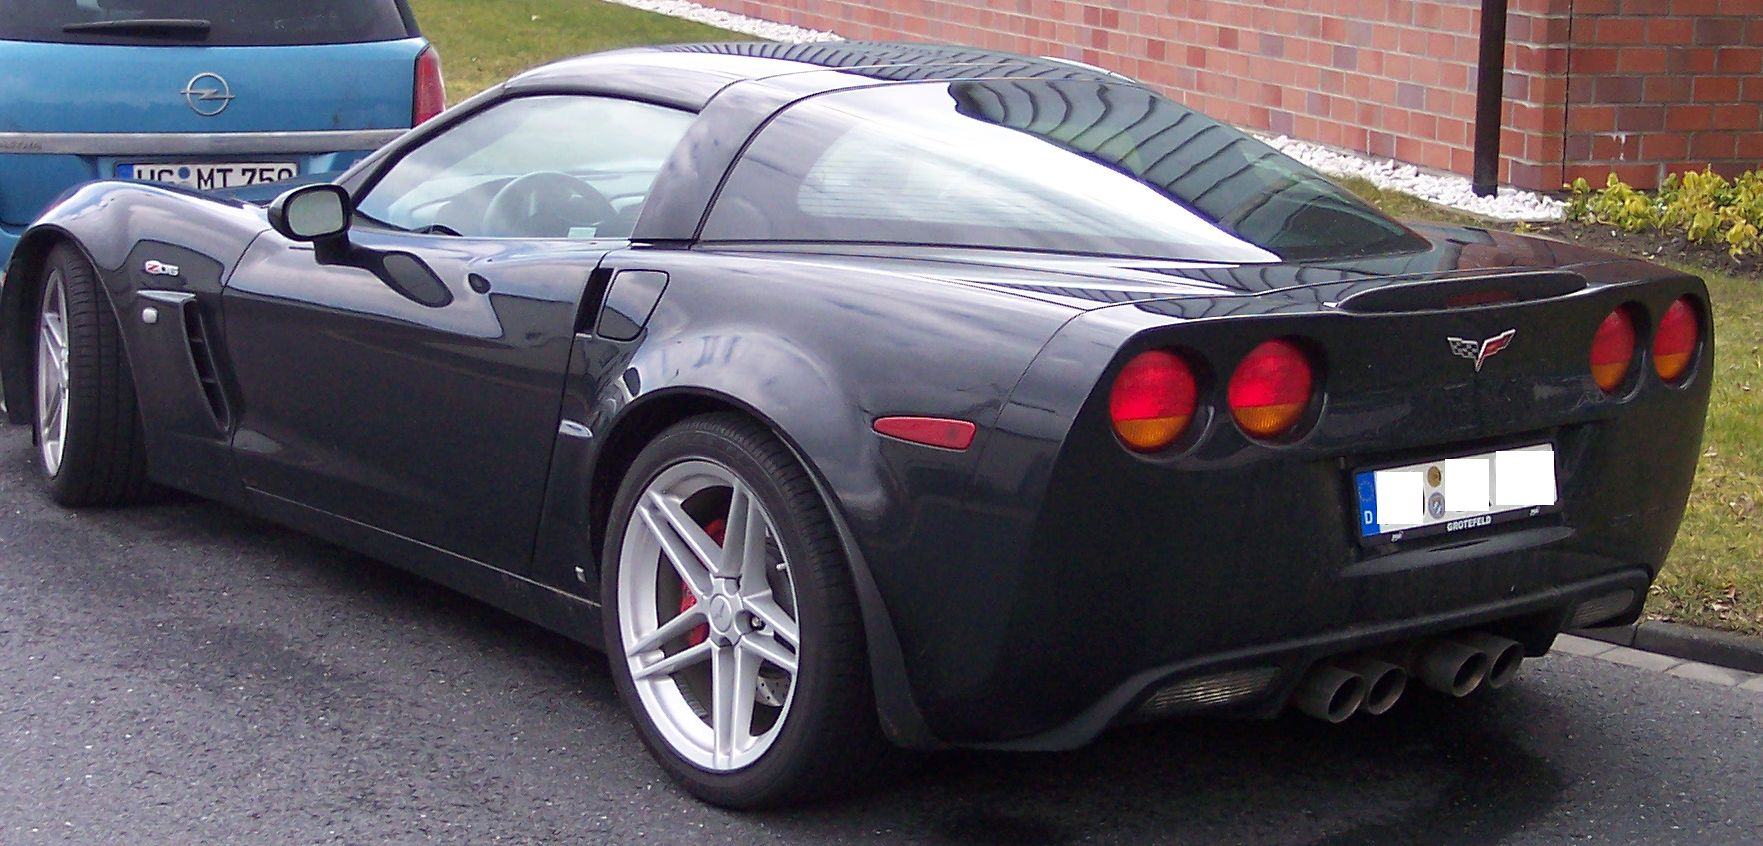 Z06 Corvette For Sale >> File:Chevrolet Corvette hl blue.jpg - Wikimedia Commons